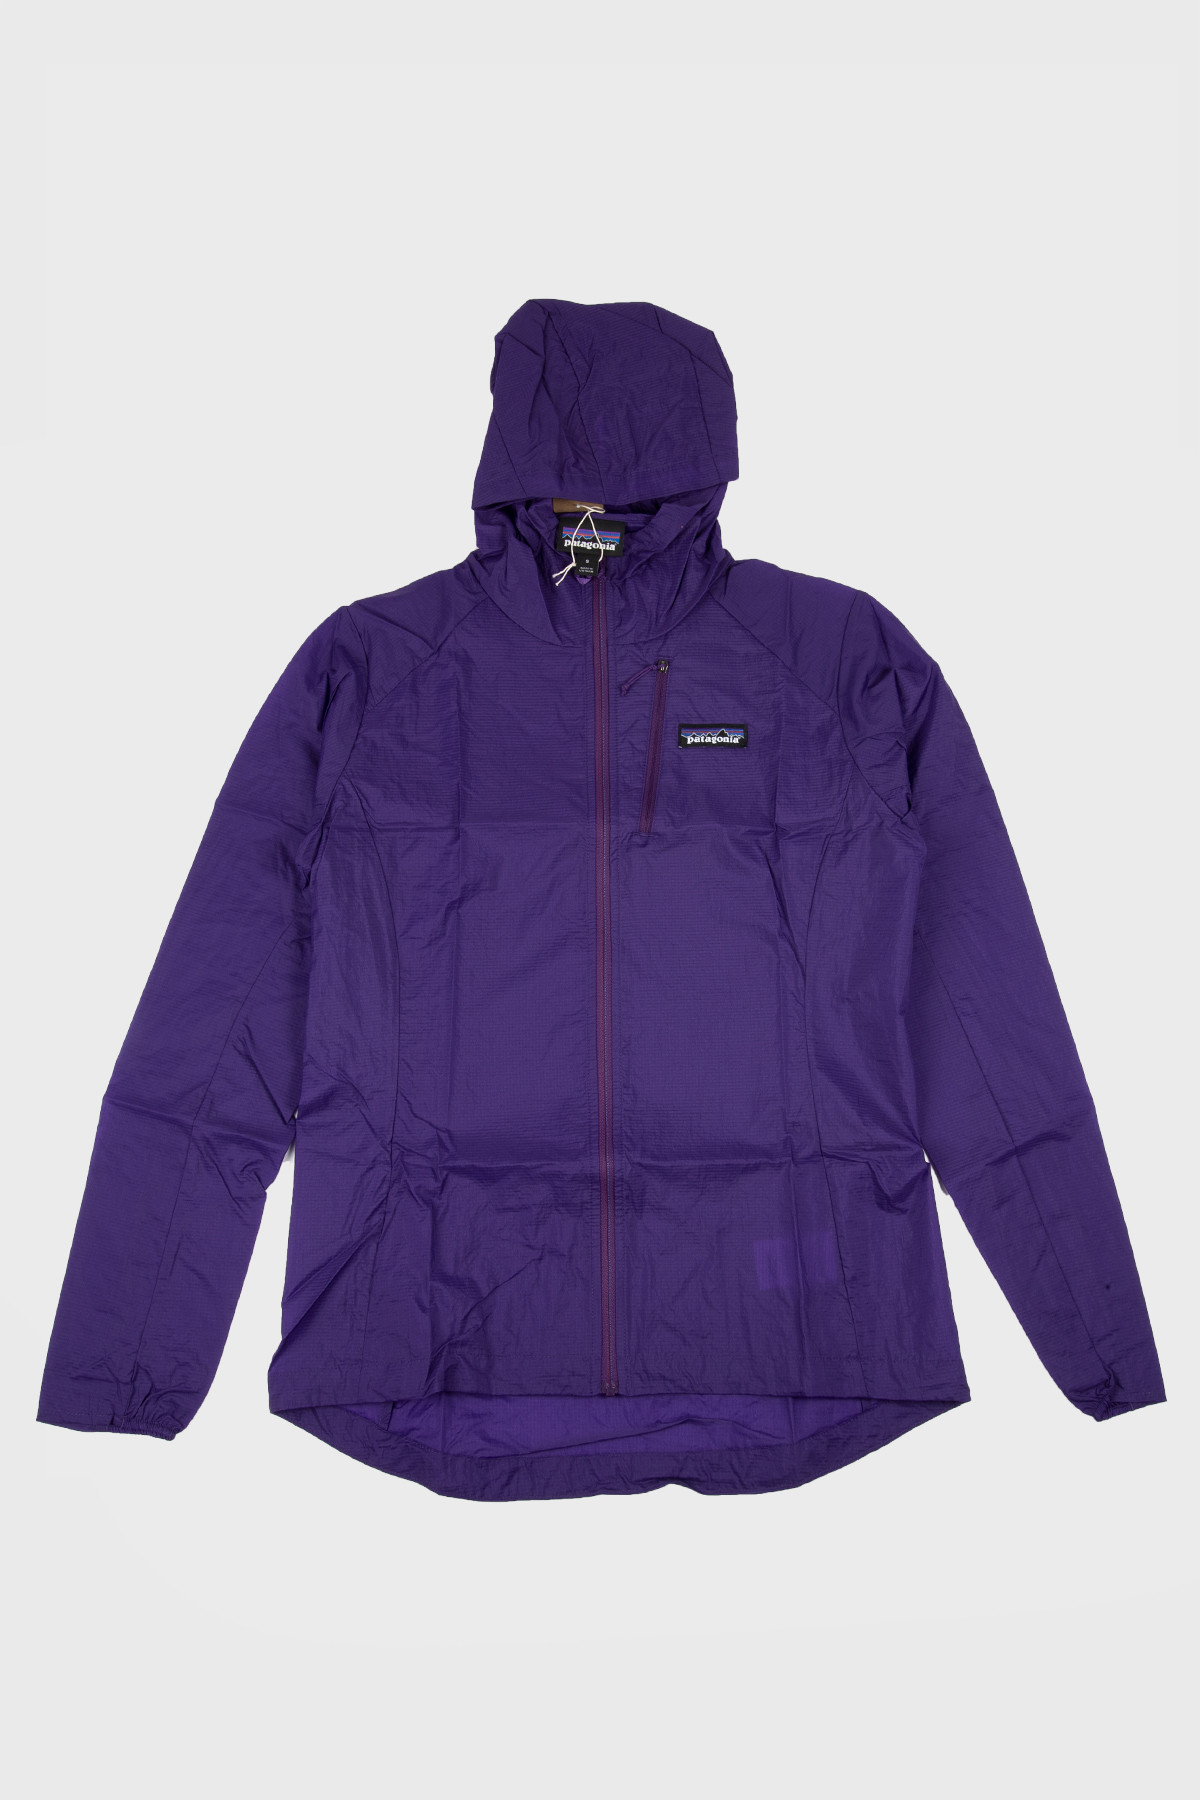 patagonia W - houdini jacket - purple